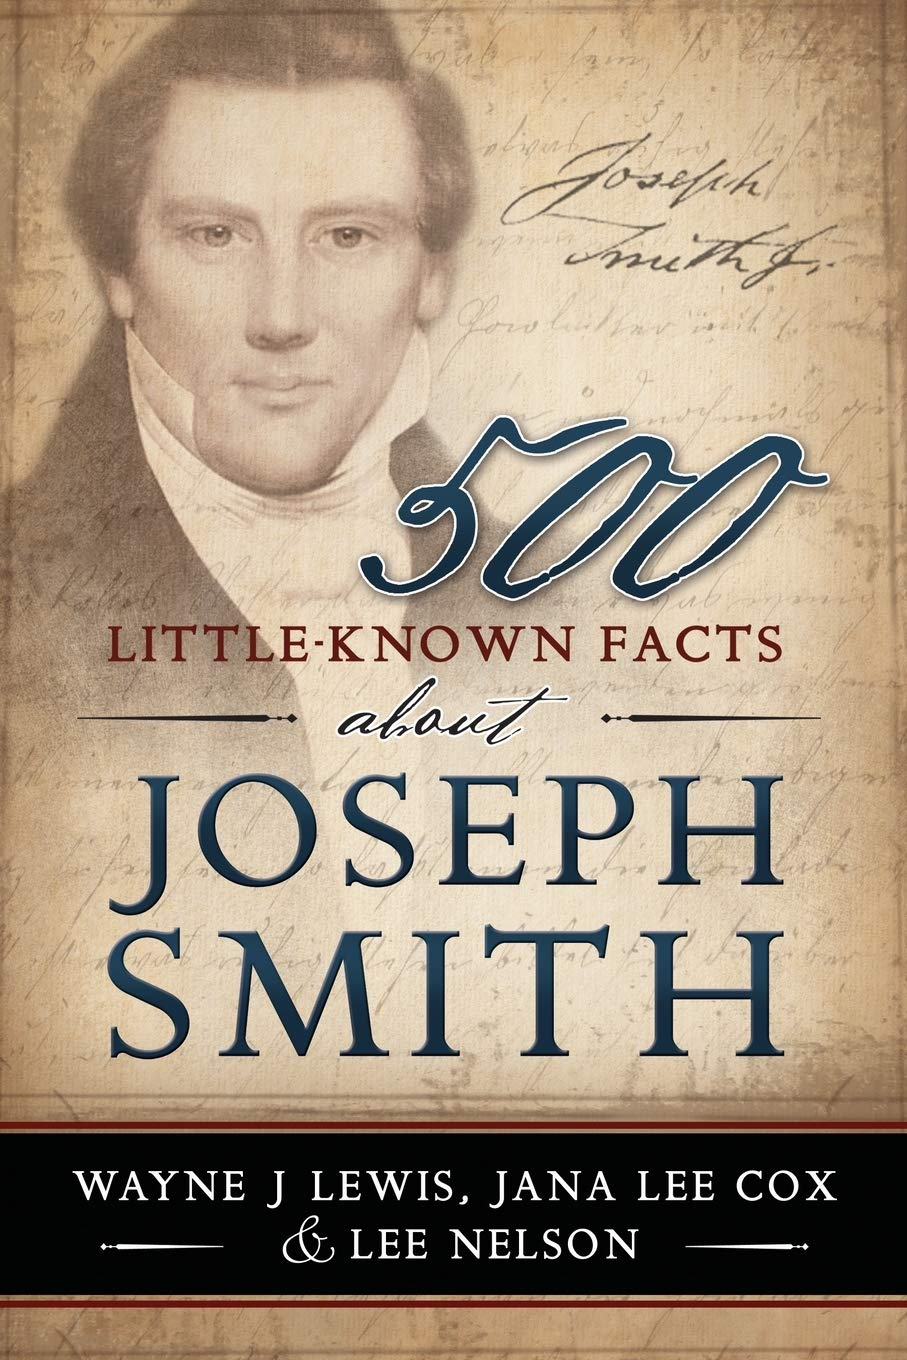 500 Little-Known Facts About Joseph Smith, Lewis, Wayne & Jana Cox & Lee Nelson